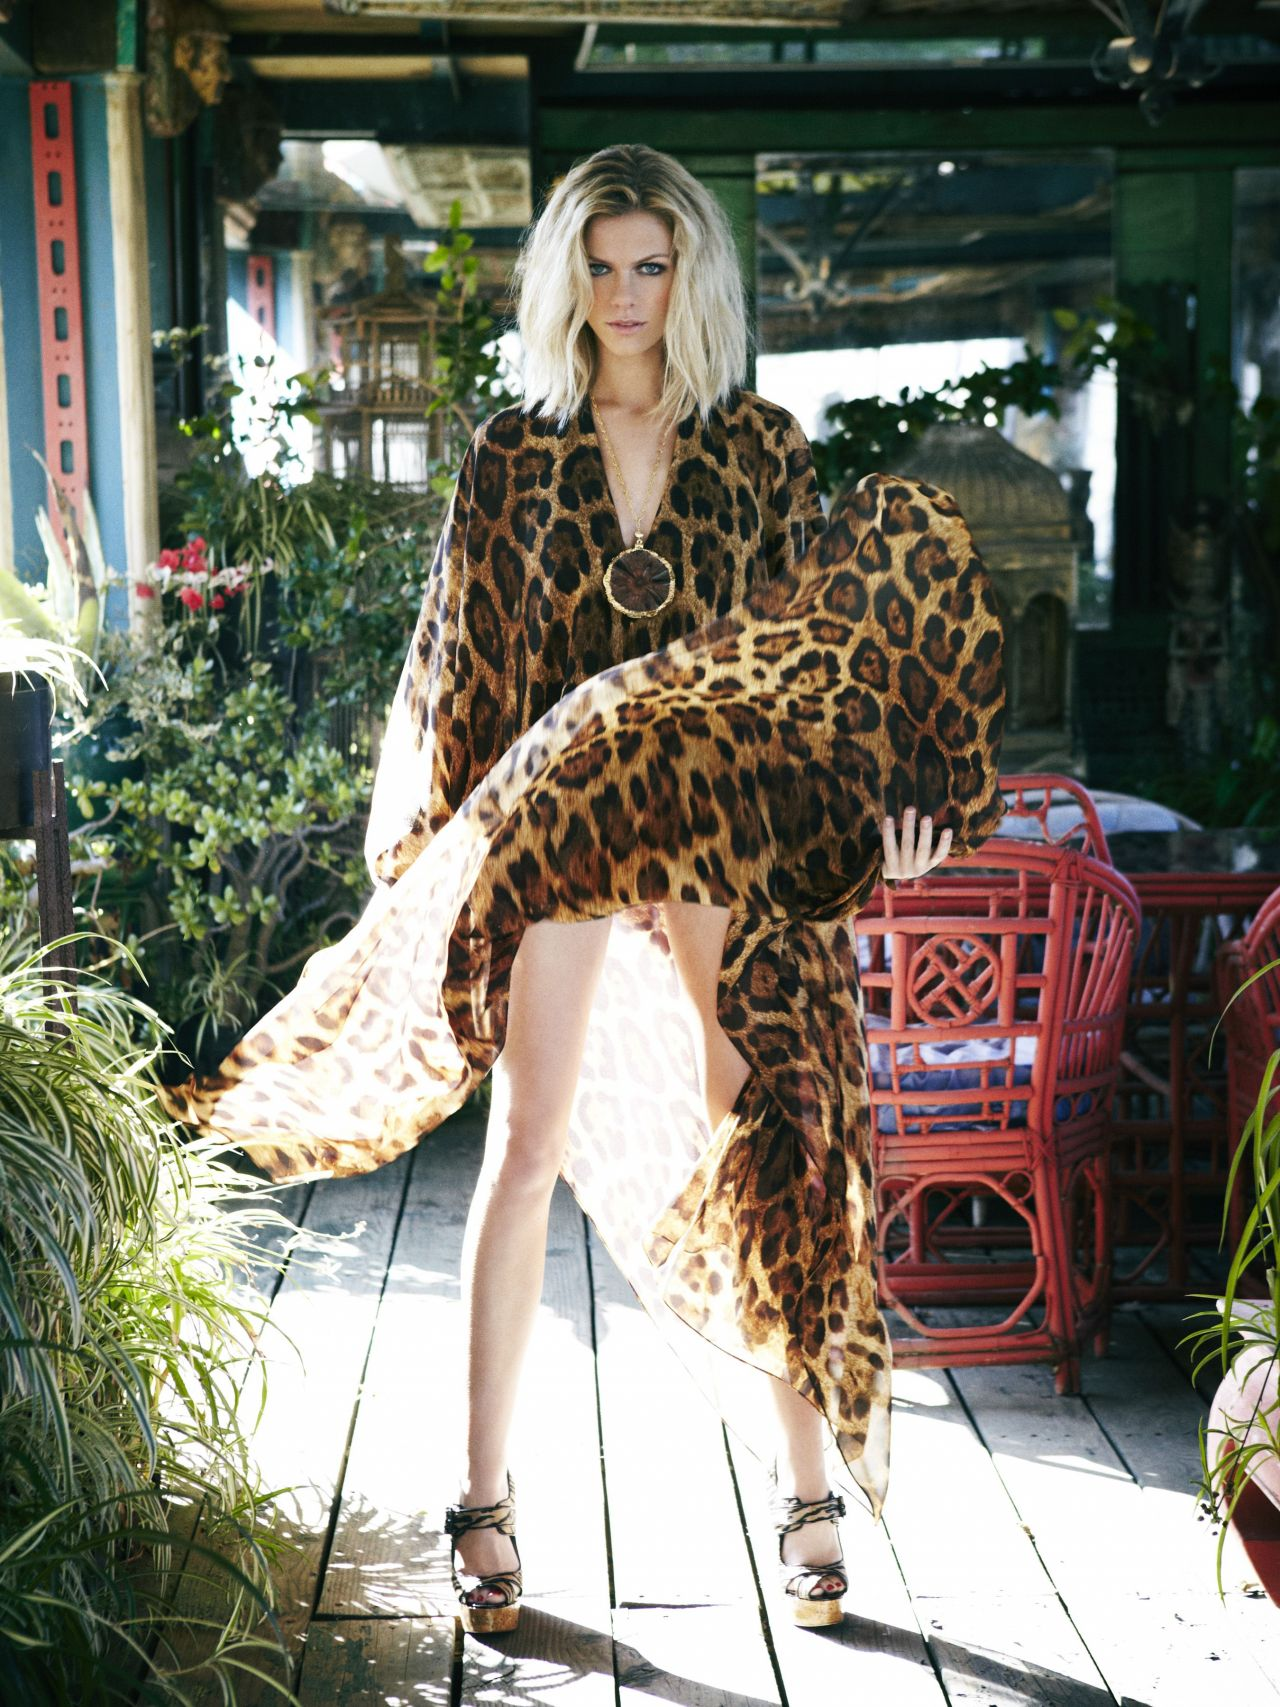 Brooklyn Decker Photoshoot by Erez Sabag Photoshoot